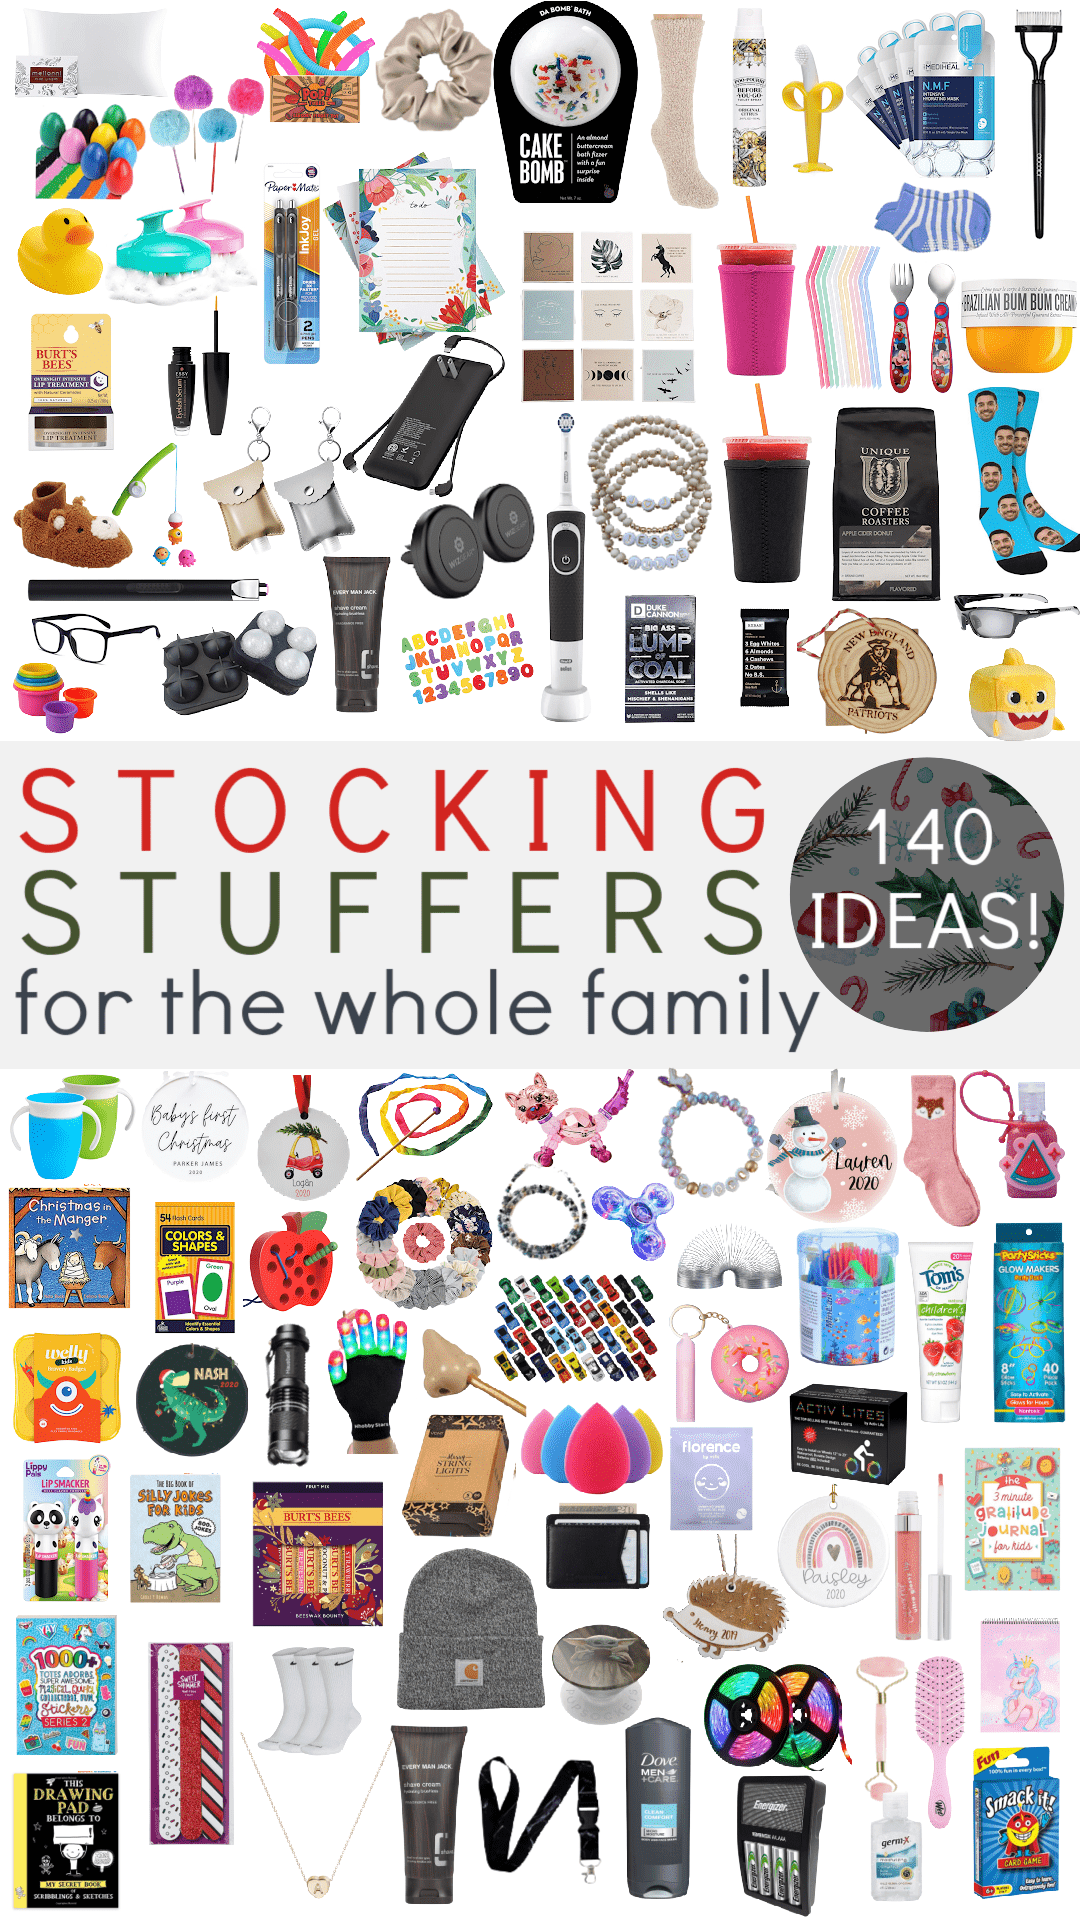 Houston lifestyle influencer Meg O shares stocking stuffer ideas for the whole family - 140 ideas! For her, for him, babies and toddlers, boys, girls, teen boys, and teen girls!